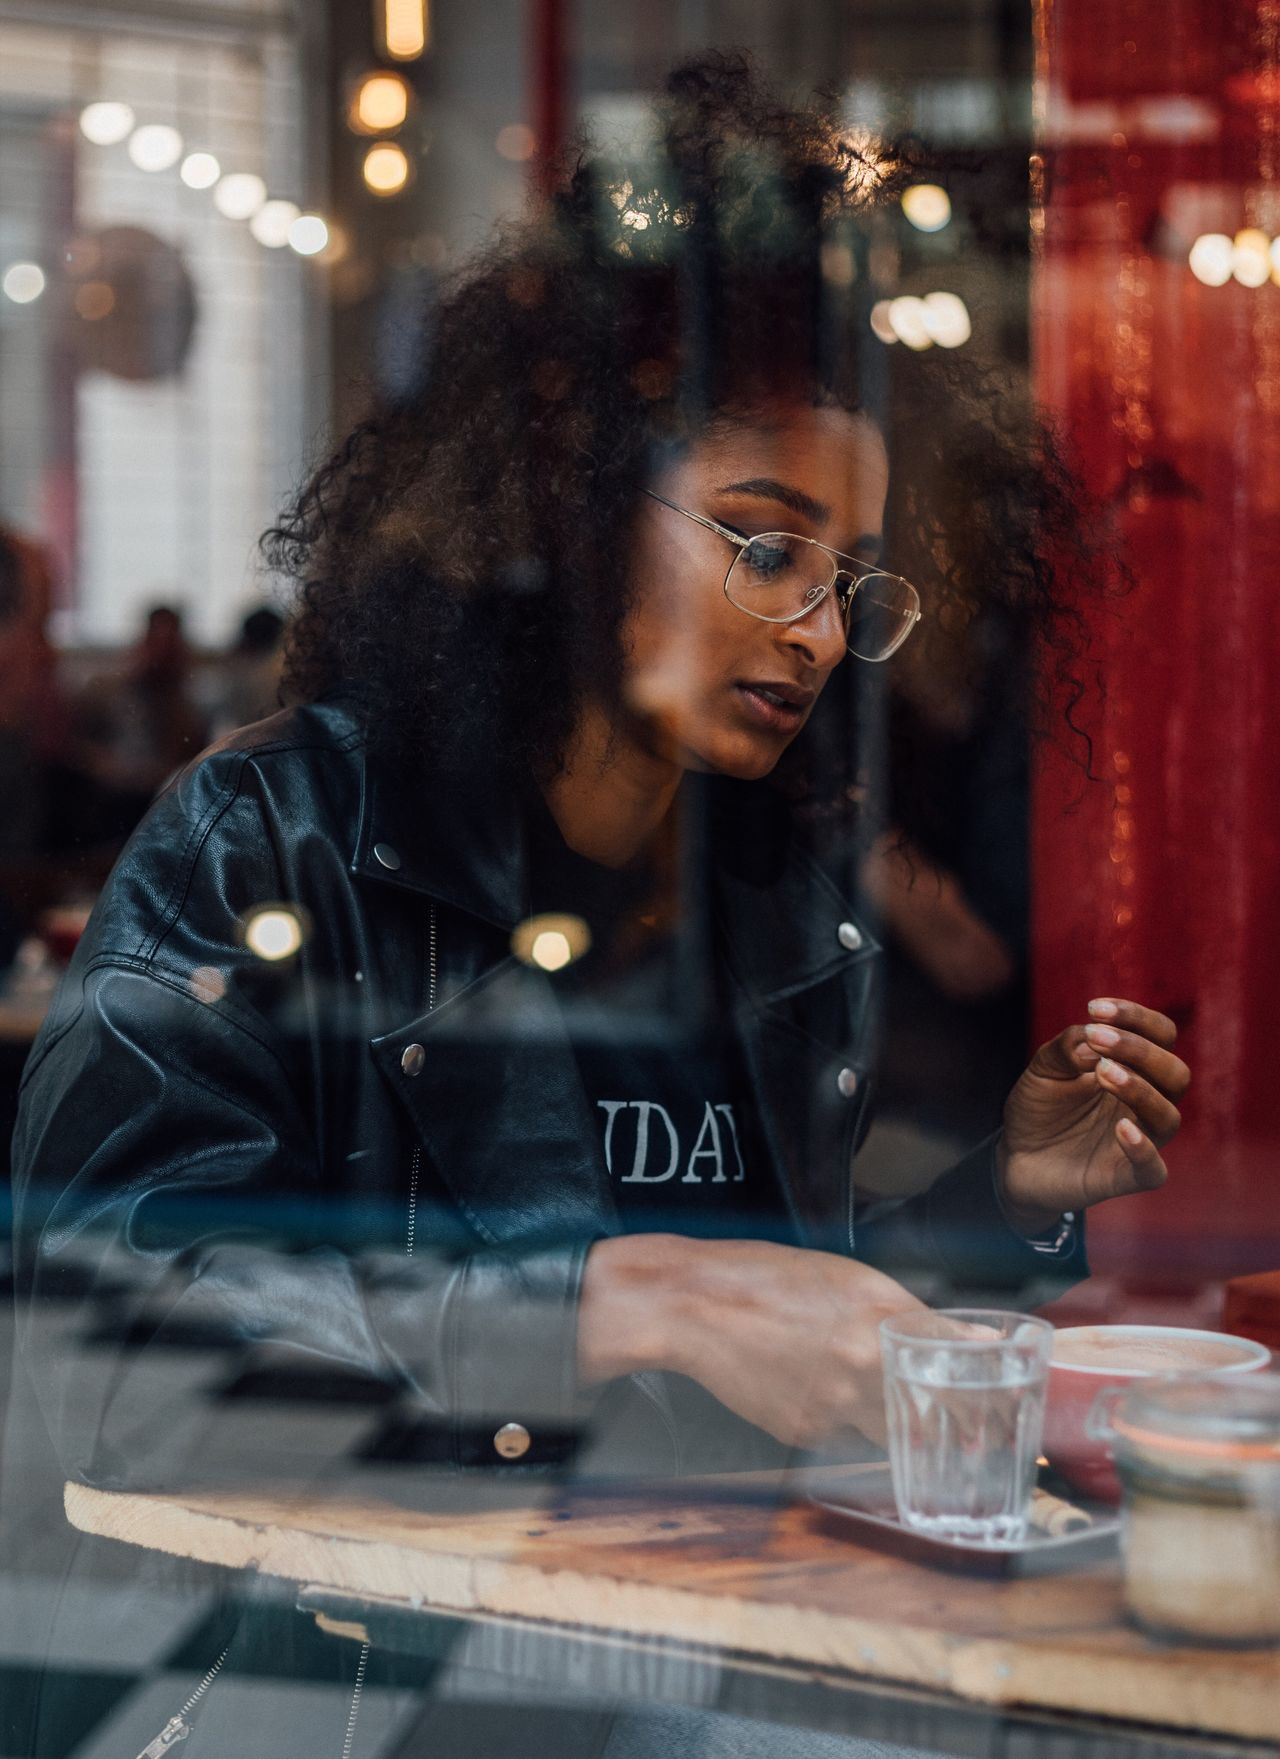 Coffee, anyone? young adult one person sunglasses restaurant real people Fashion beautiful woman front view table young women leisure activity Sitting cafe indoors illuminated lifestyles women eyeglasses portrait EyeEm Best Shots EyeEmNewHere canonphotography modelling Coffee Shop Fresh on Market 2017